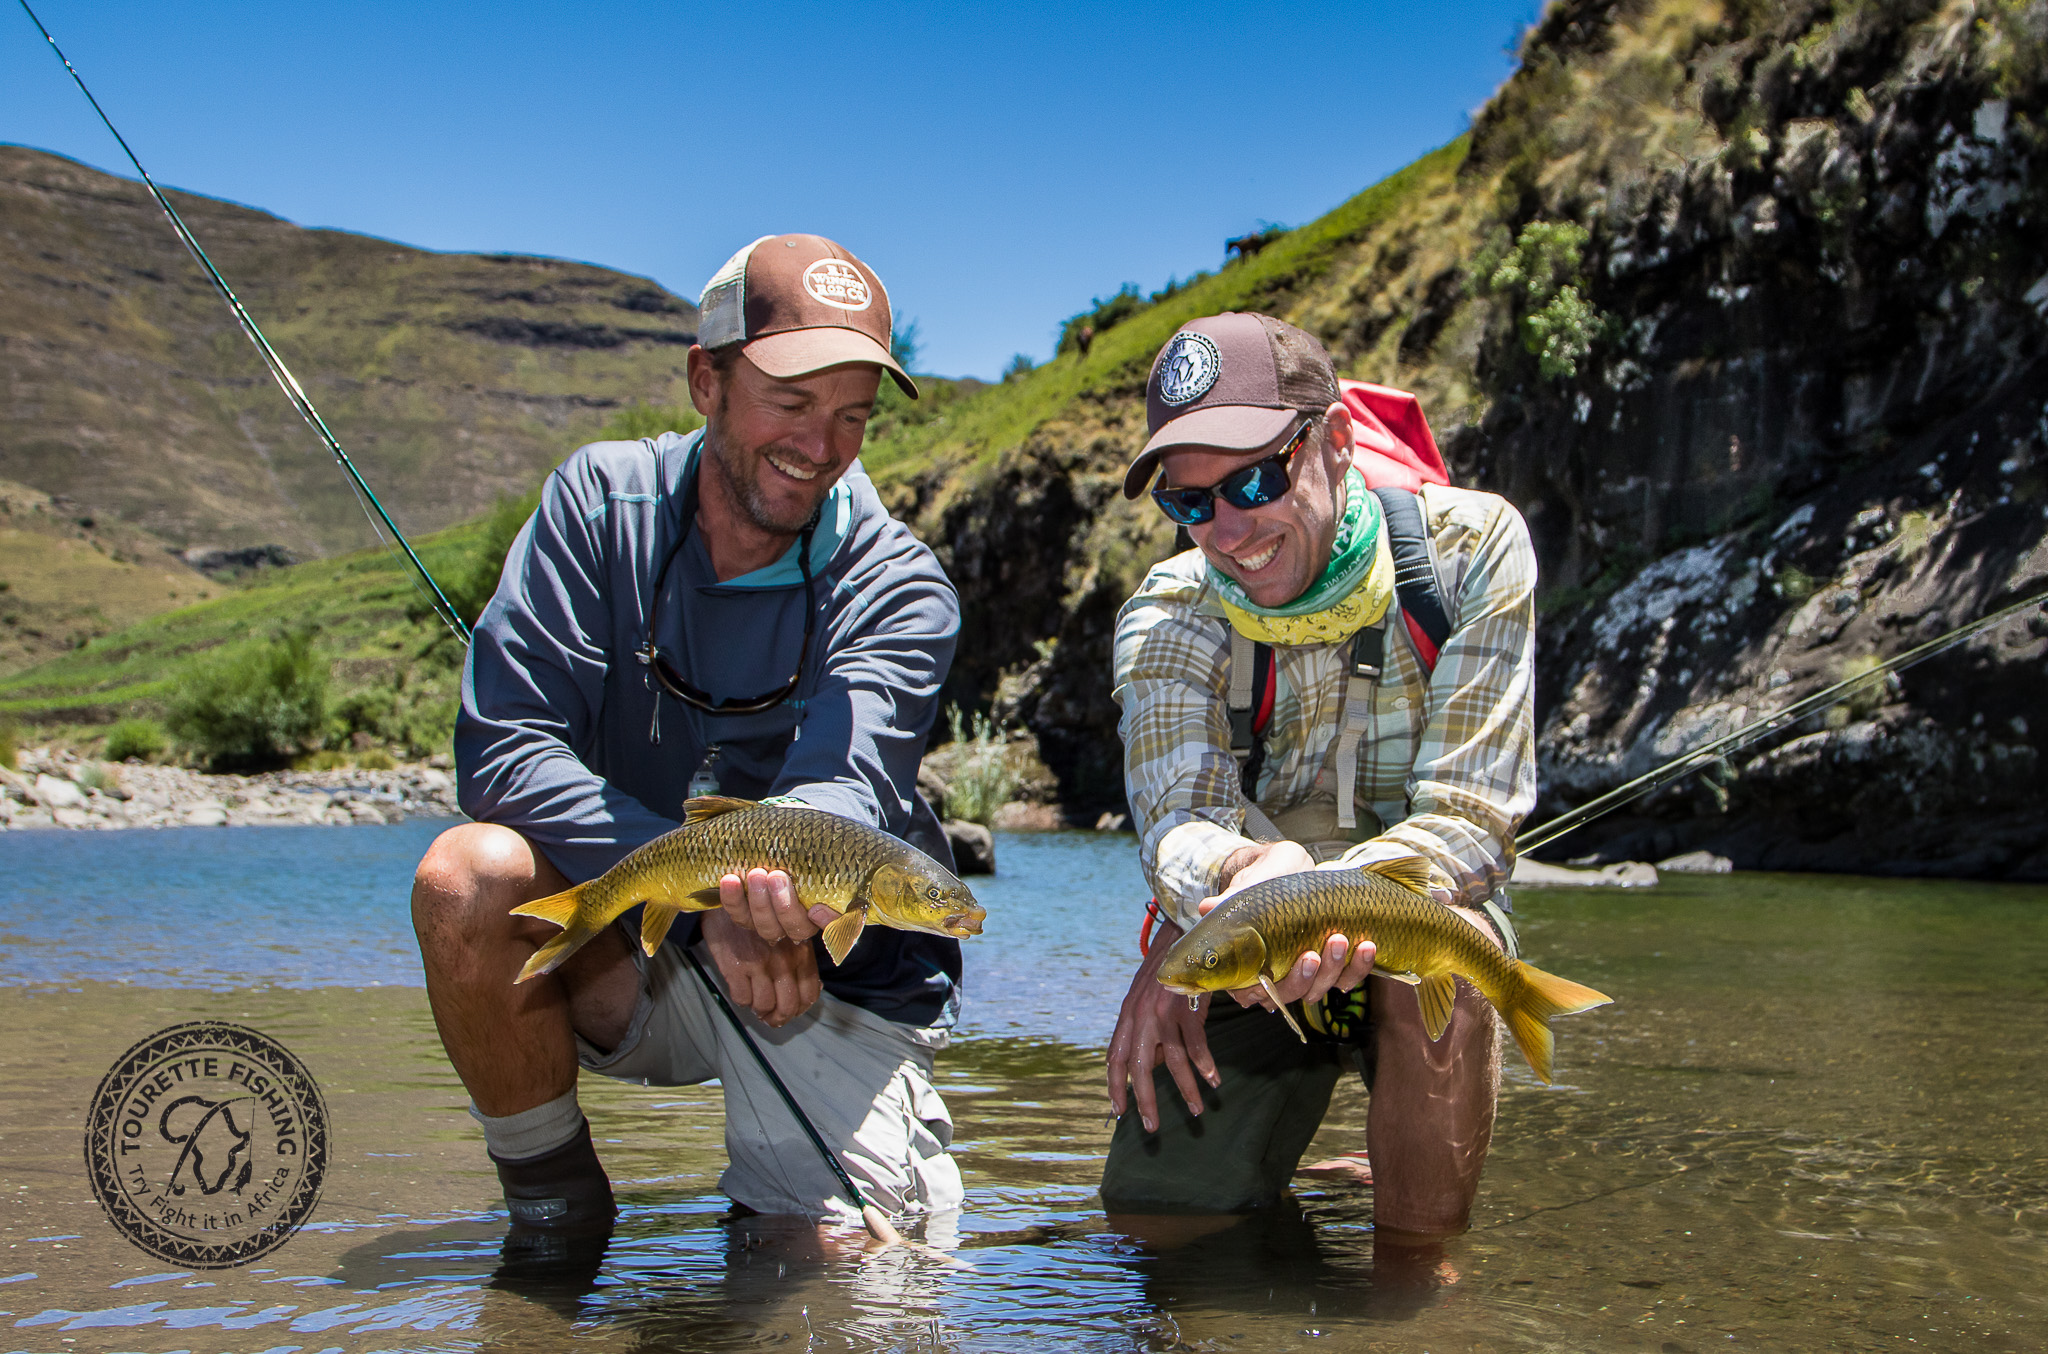 Double up time for Keith Clover and Jeff Currier. Both these fish were taken on dryfly and what a pleasure to have been there to capture the moment.